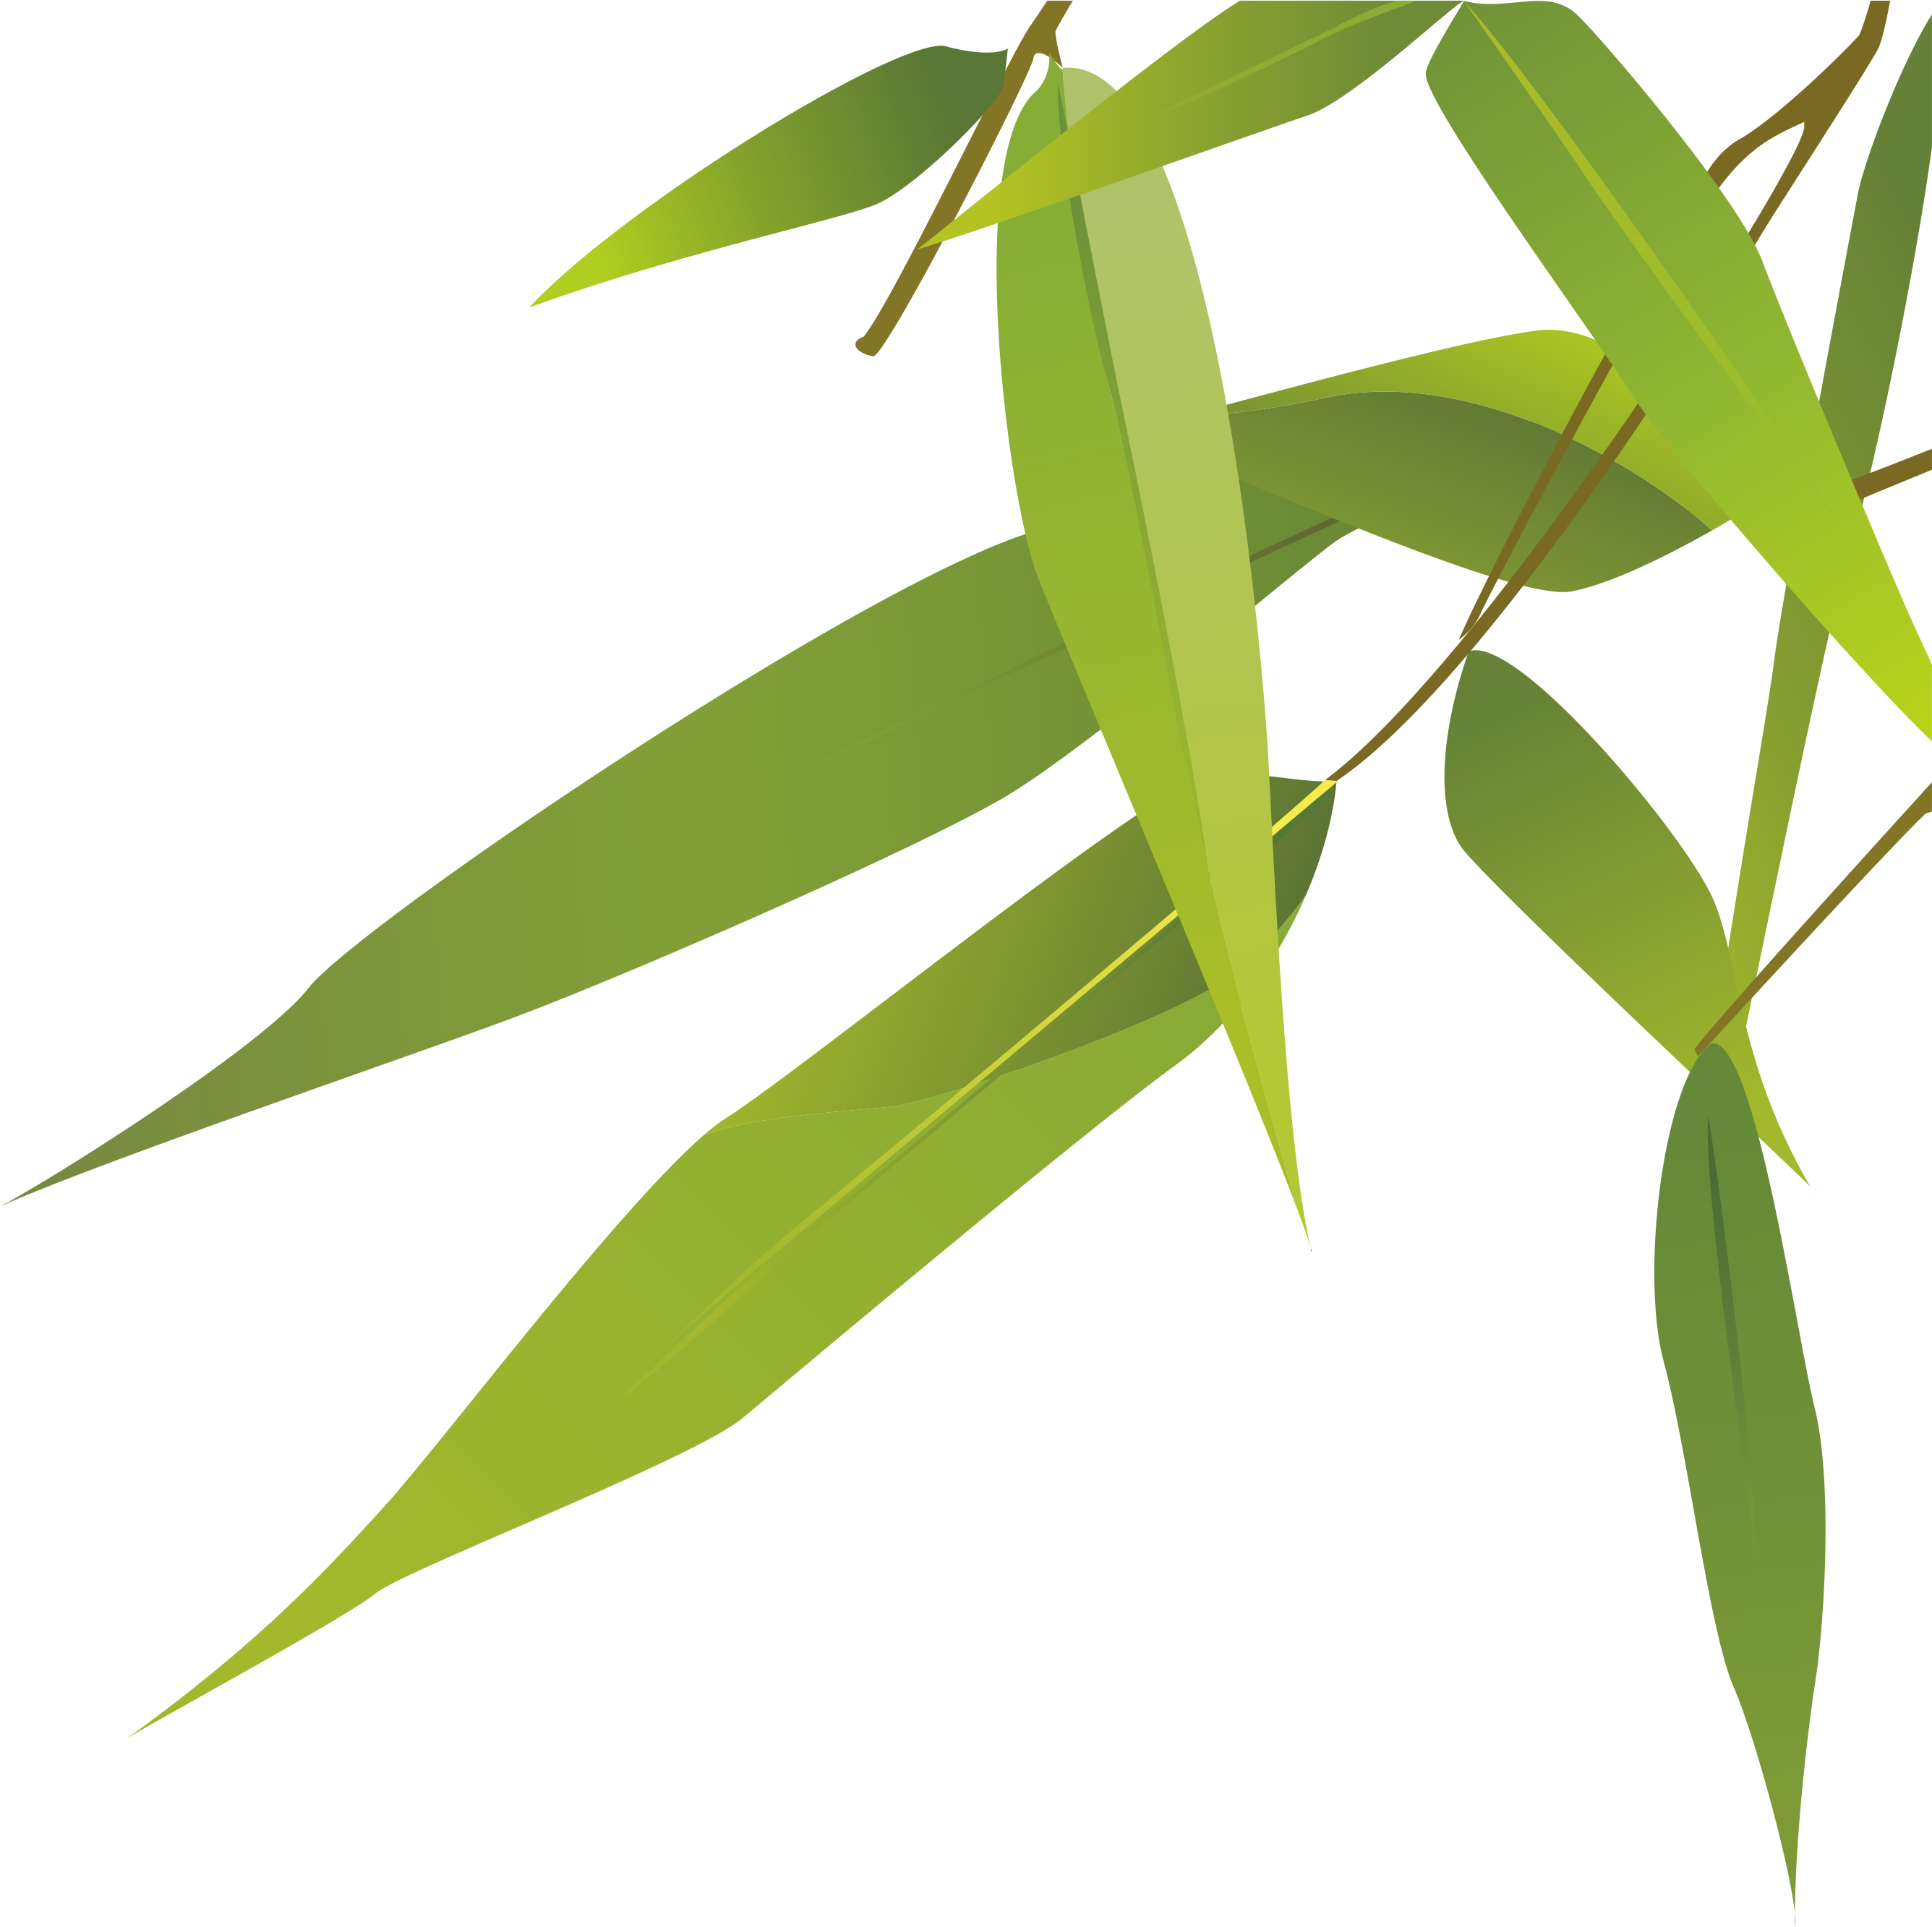 Bamboo leaves png. Zongzi dragon boat festival